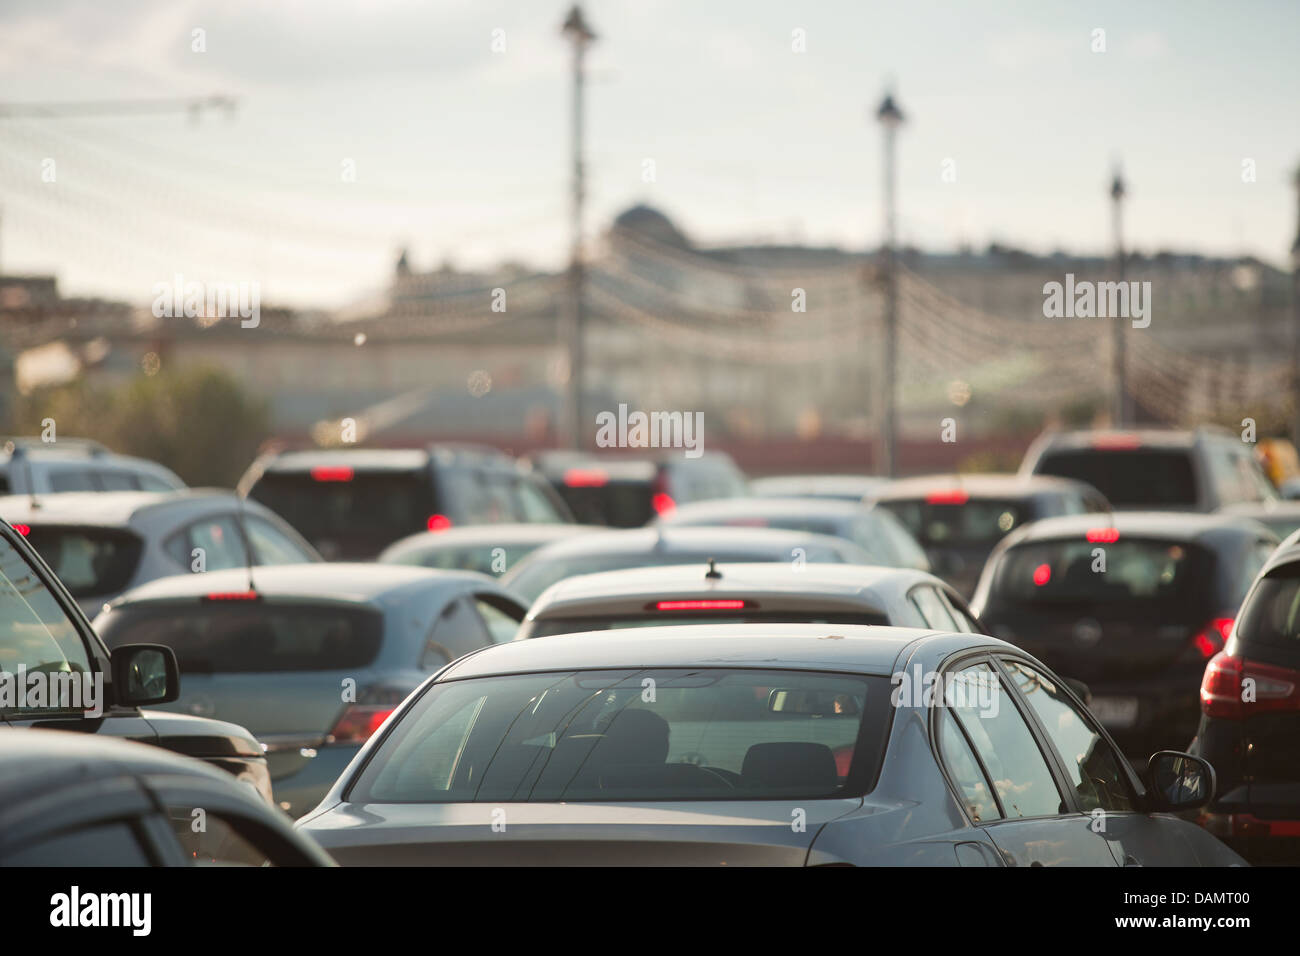 cars in traffic jam in a city during rush hour - Stock Image